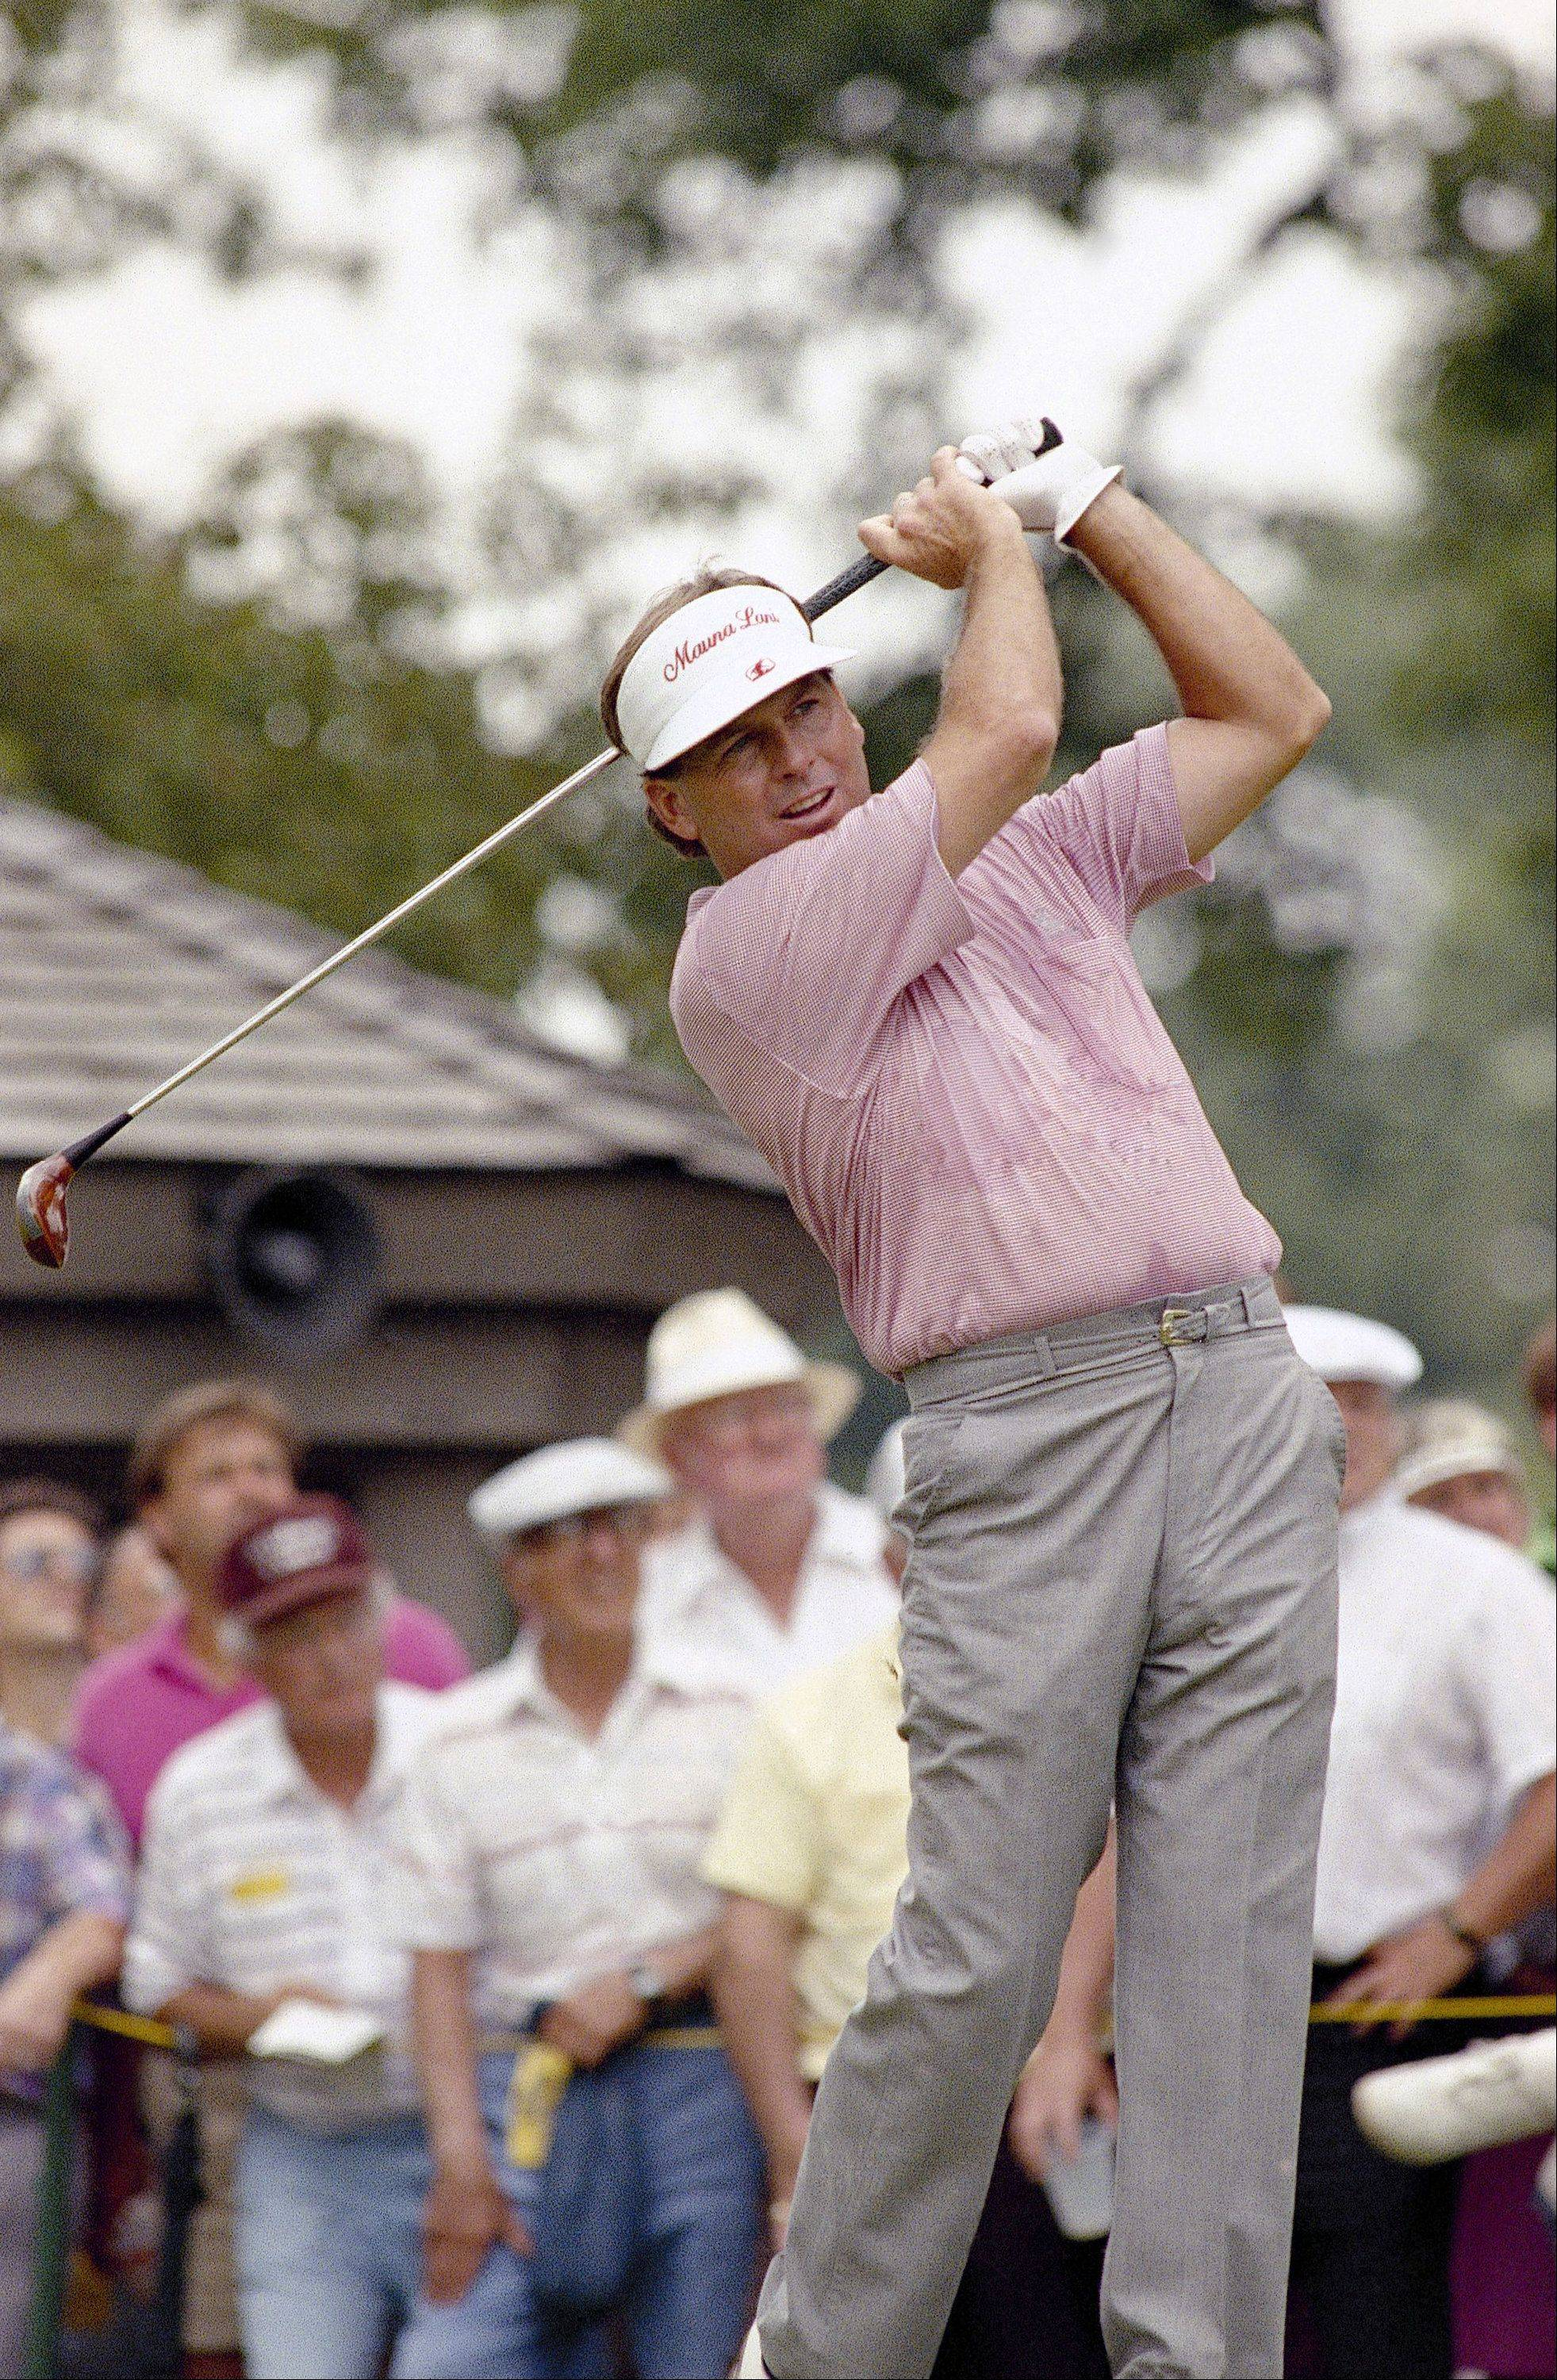 Lanny Wadkins, professional golfer, tees off during the U.S. Open, at the Medinah Country Club in Medinah, Illinois, June 14, 1990.